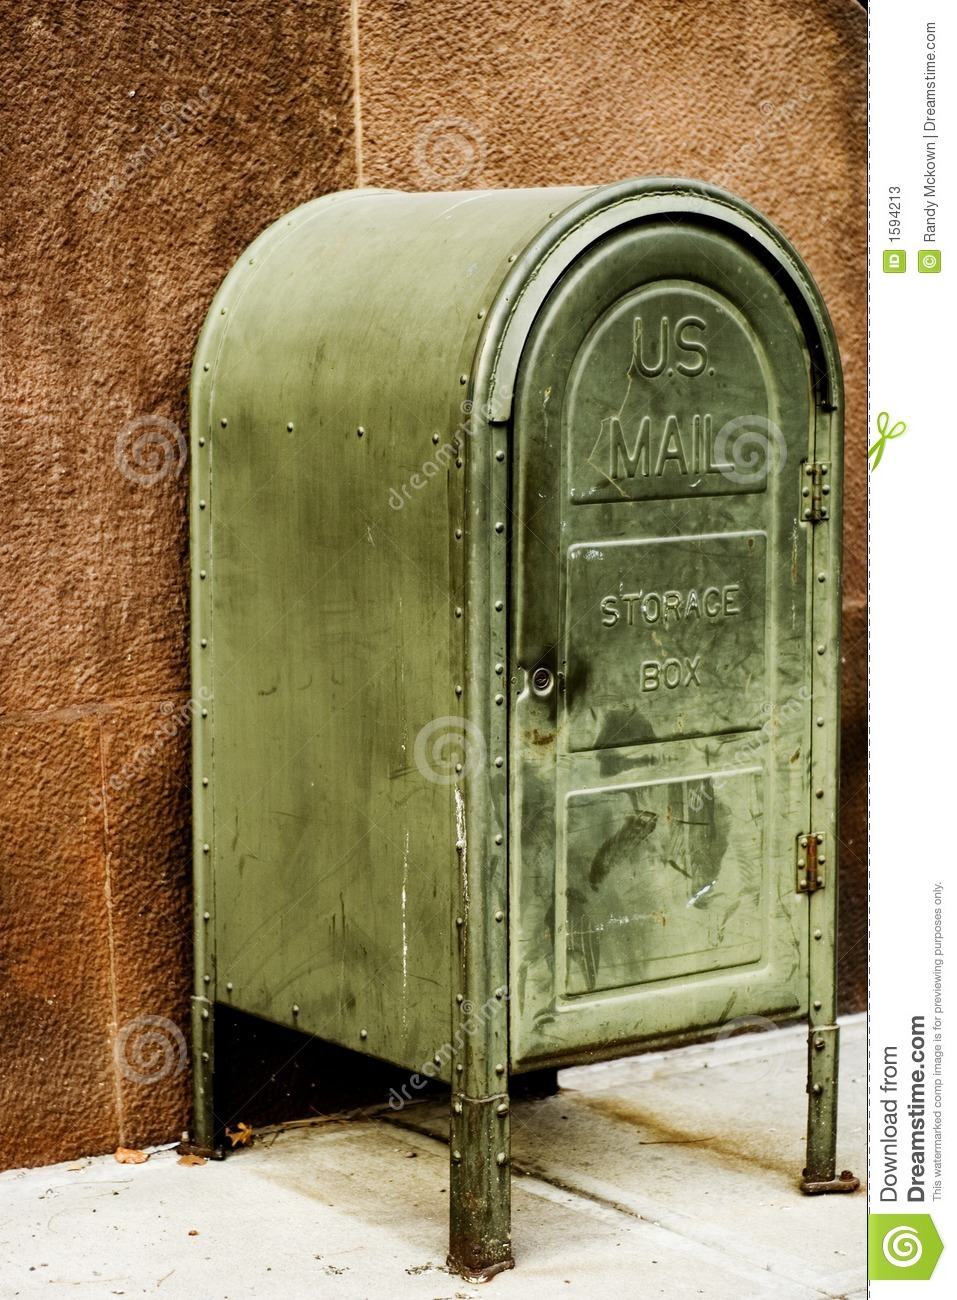 Us Mail Stock Image Image Of Envelope Mailbox Mail